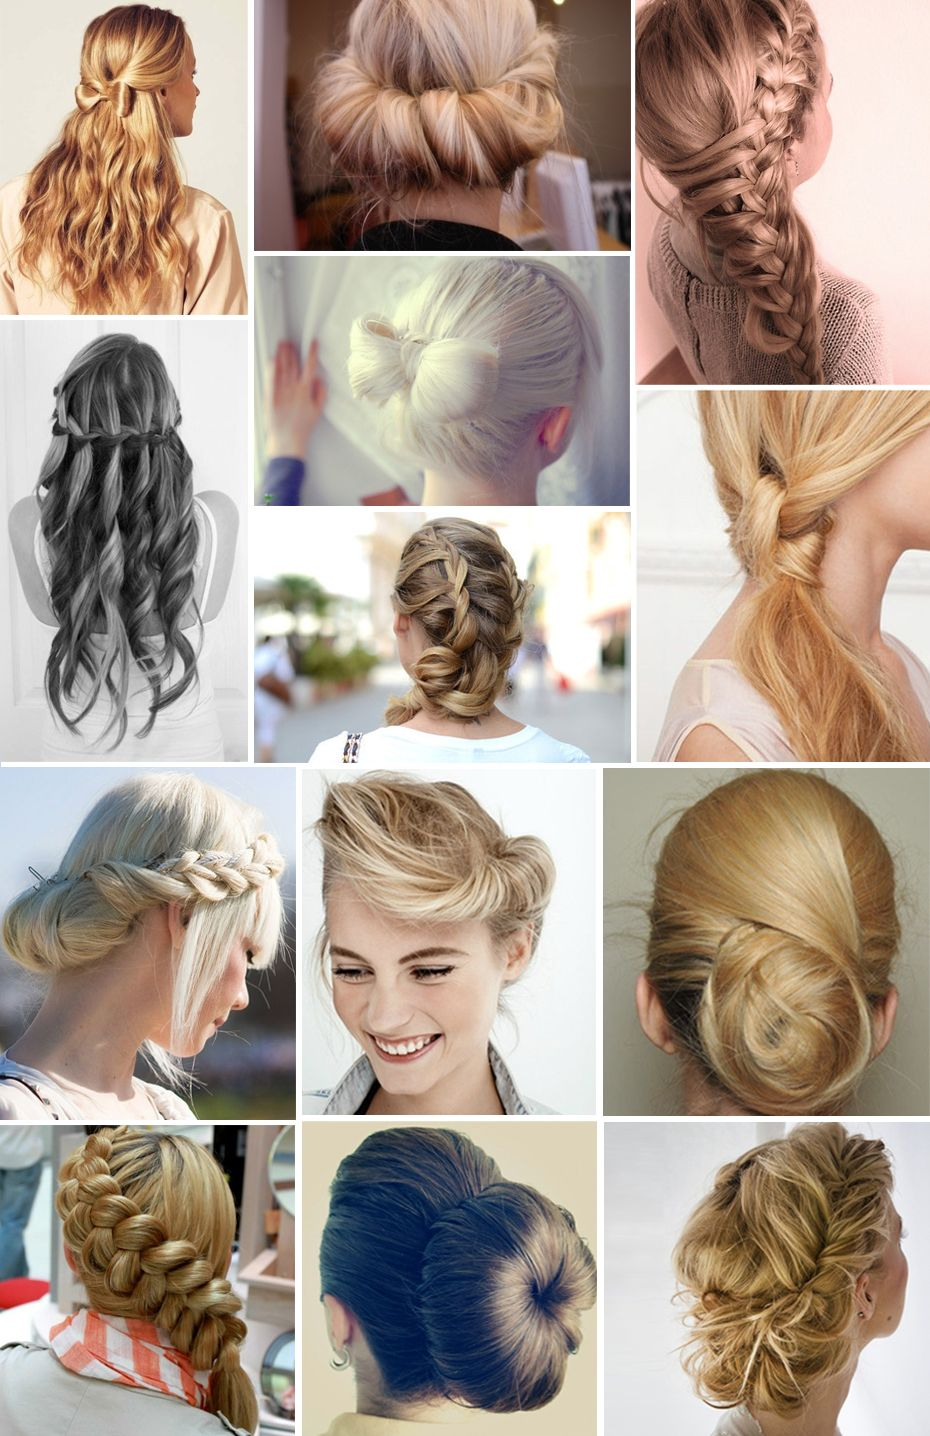 Pin by van hilderbrand on products i love pinterest hair style